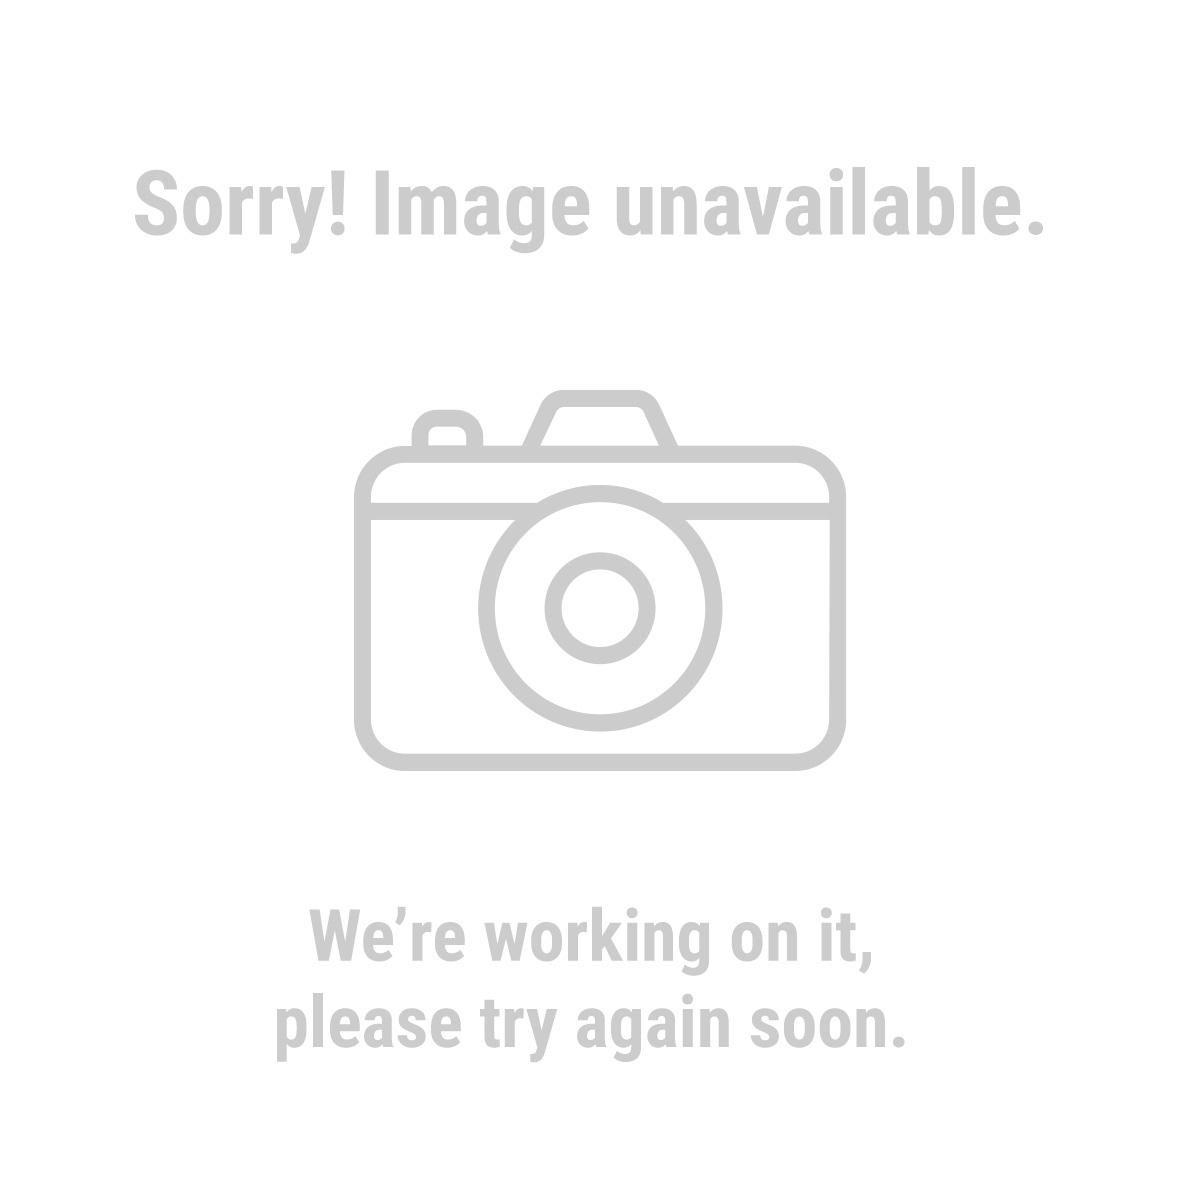 14 Piece Master Ball Joint Adapter Set